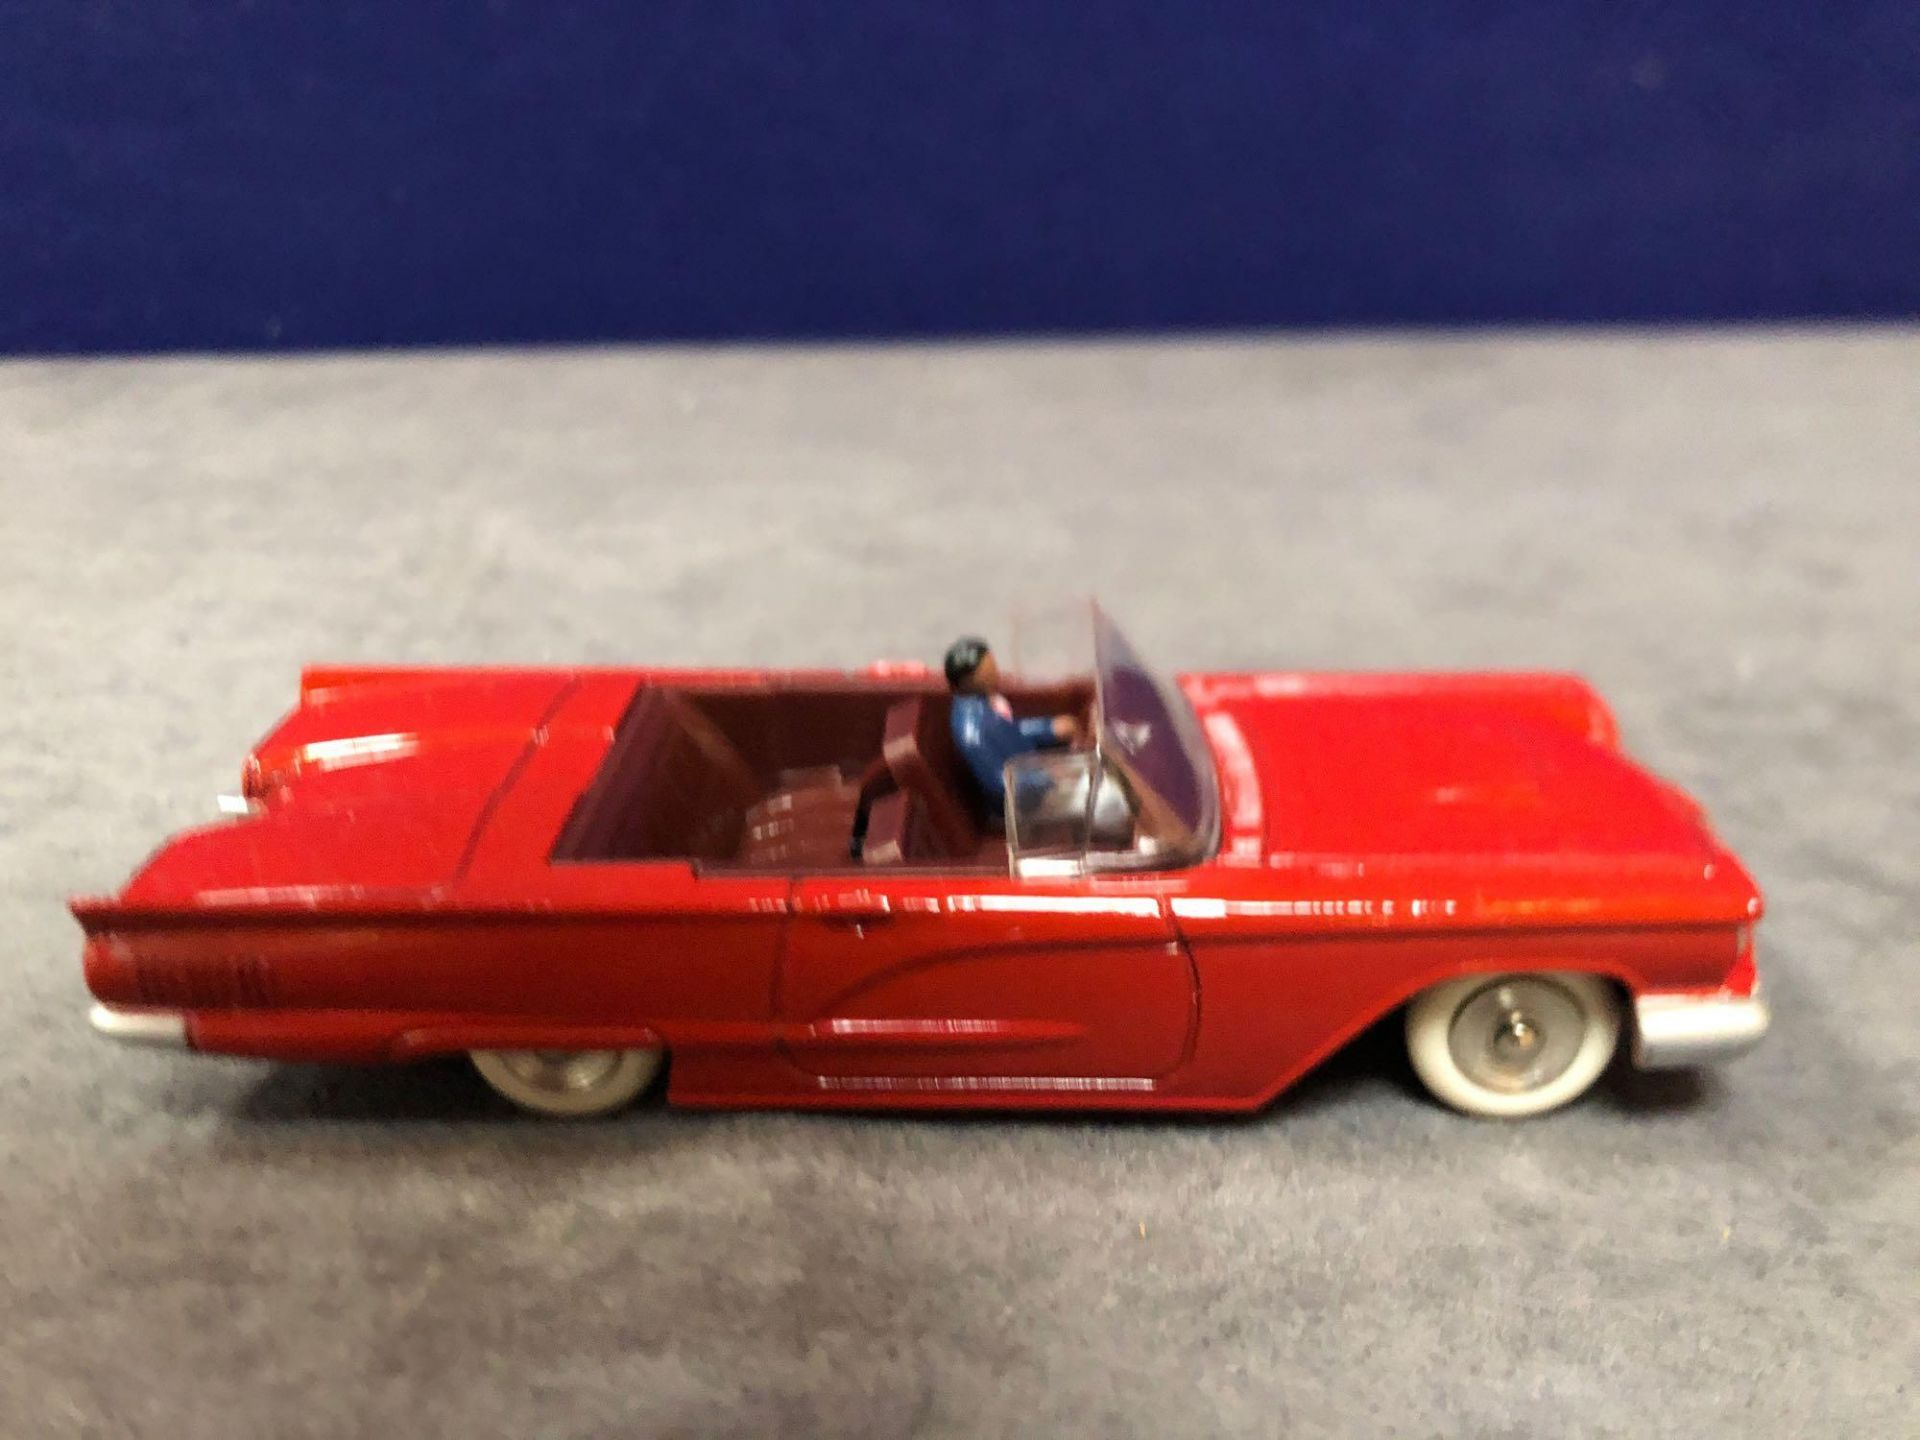 Dinky (Norev Edition)Diecast #555 Ford Thunderbird In Red mint in box - Image 2 of 3